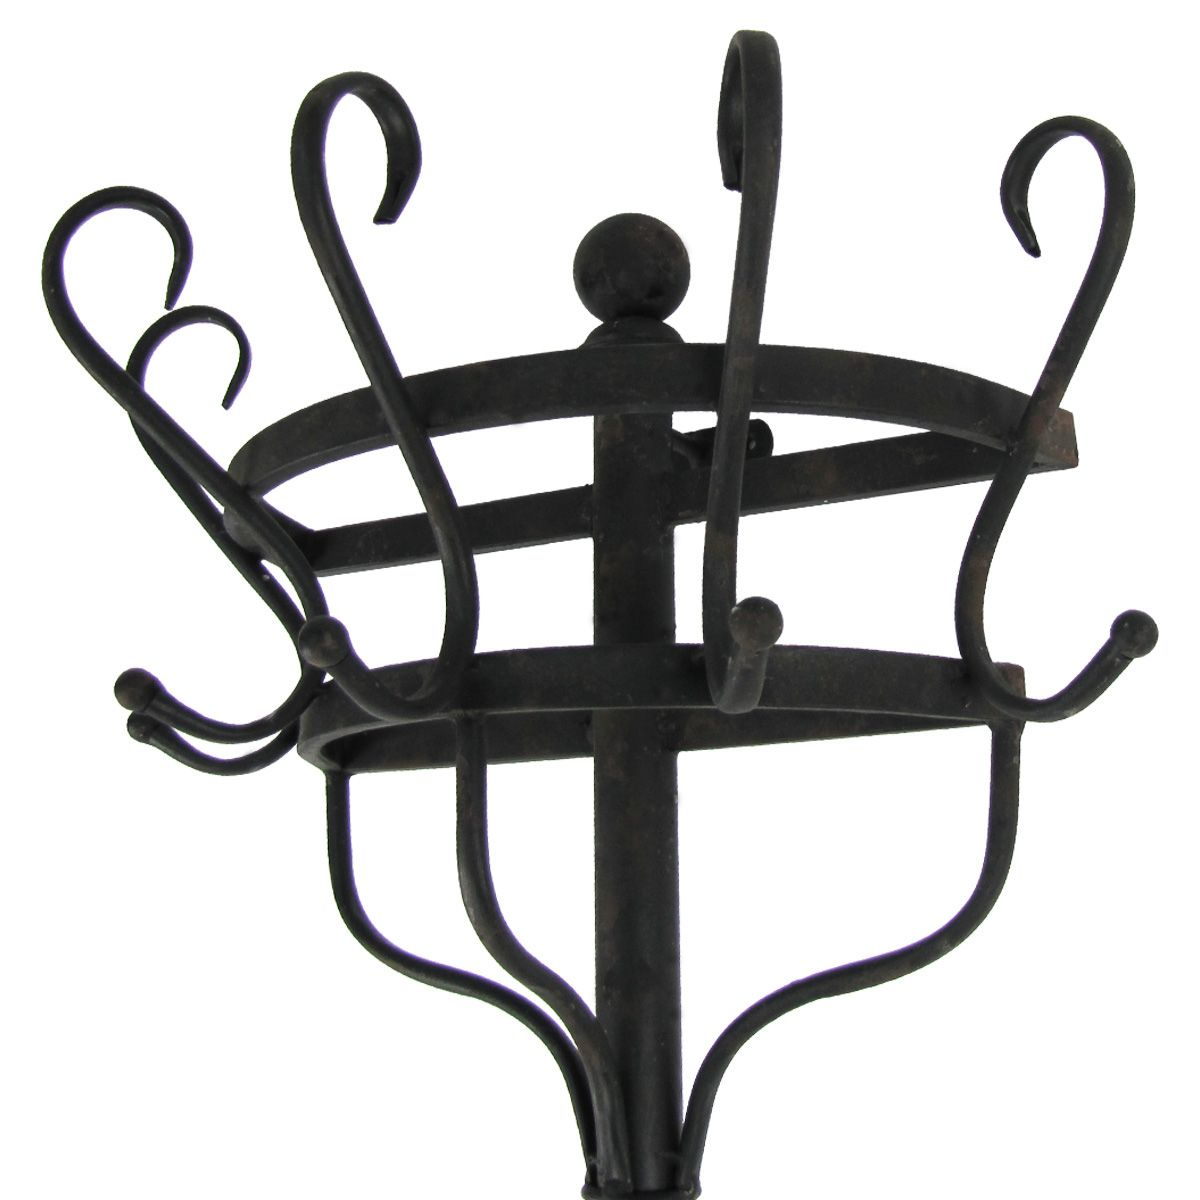 Antique Wall Mounted Coat Rack Details About Vintage Black Metal Wall Mount Metal Walls Black Metal Wall Mounted Coat Rack